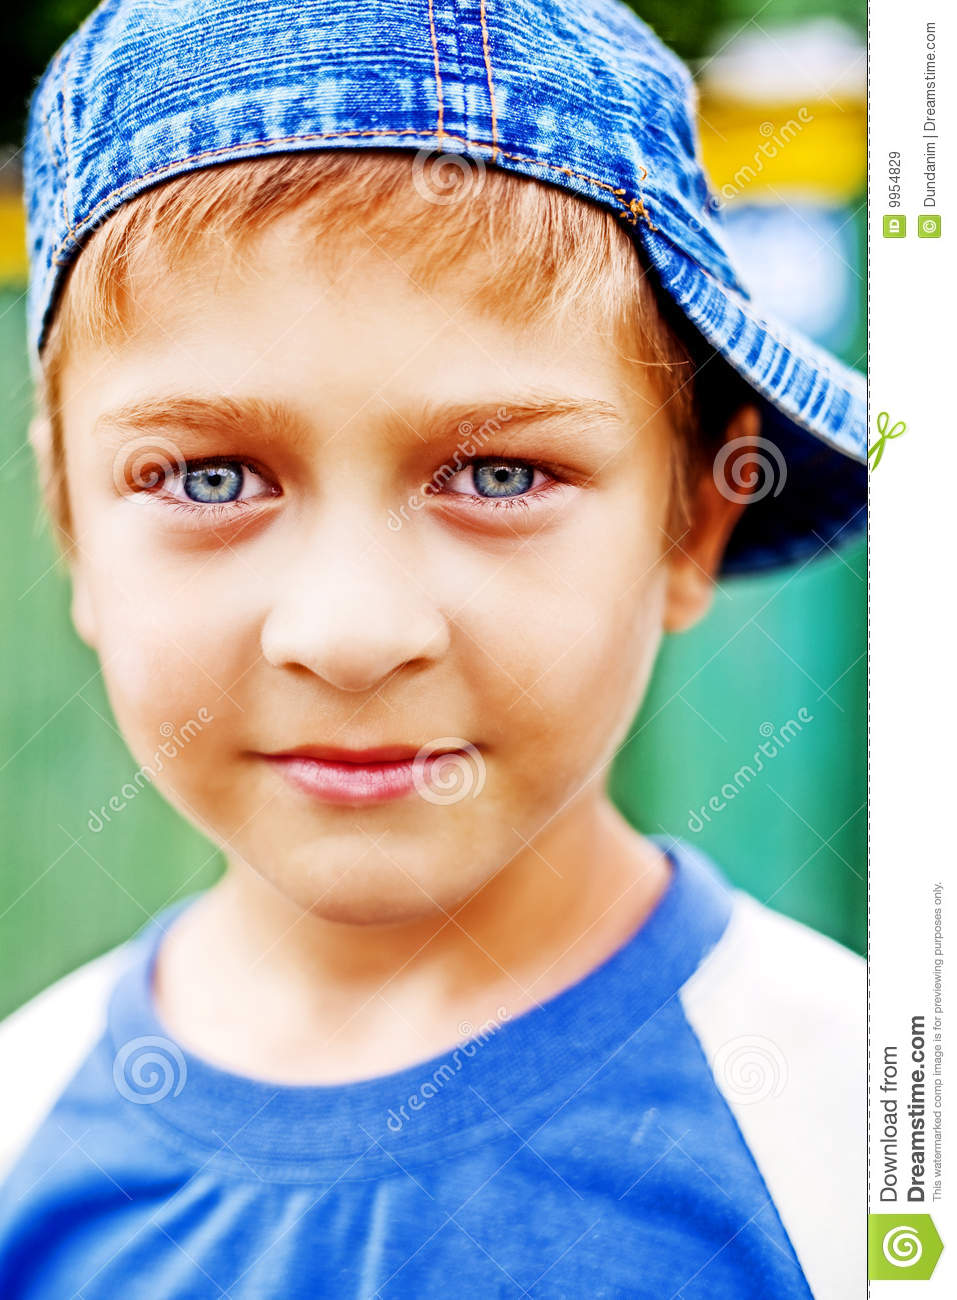 one cute kid with beautiful blue eyes stock image - image of eyes